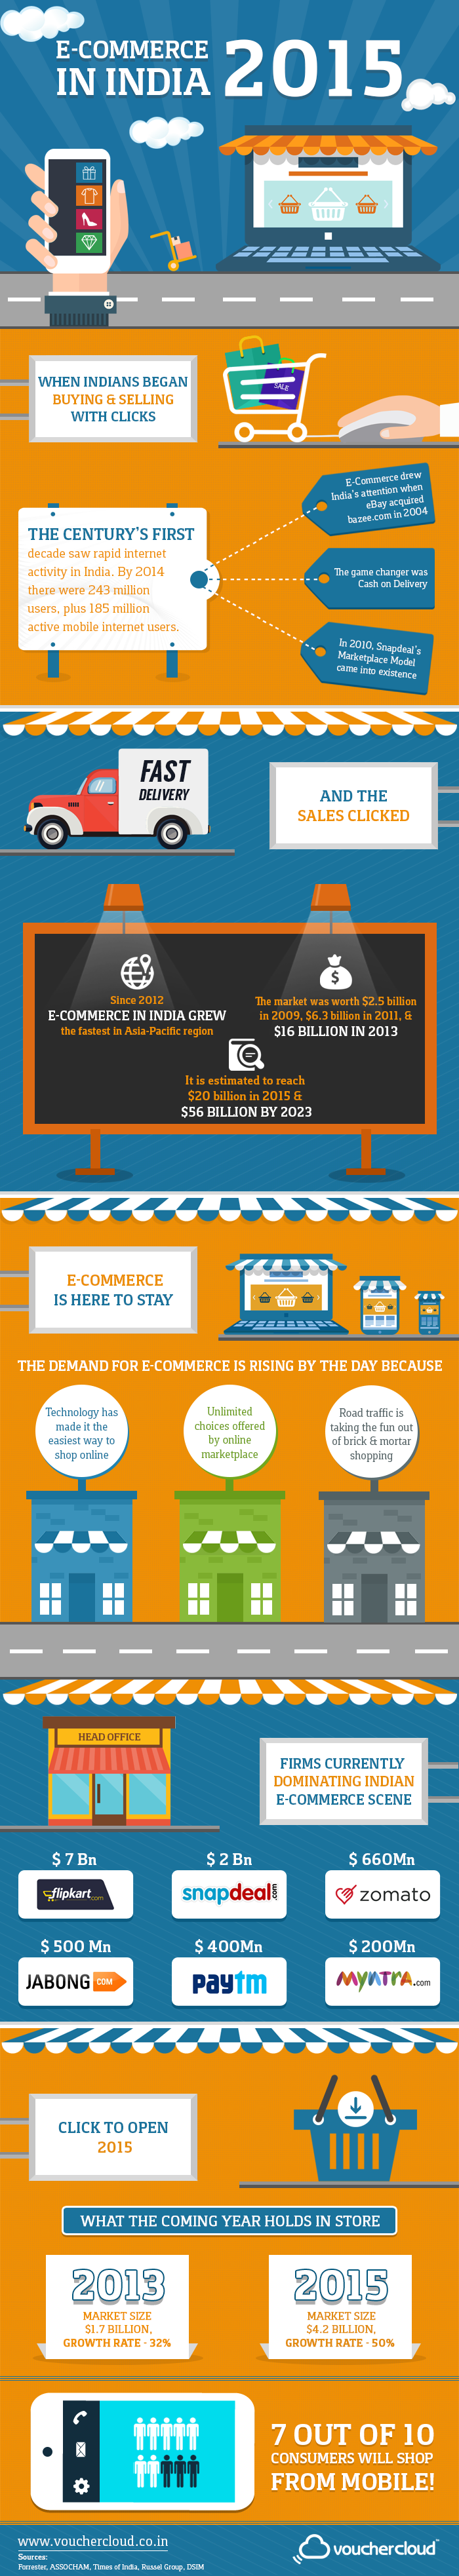 E-commerce in India in 2015